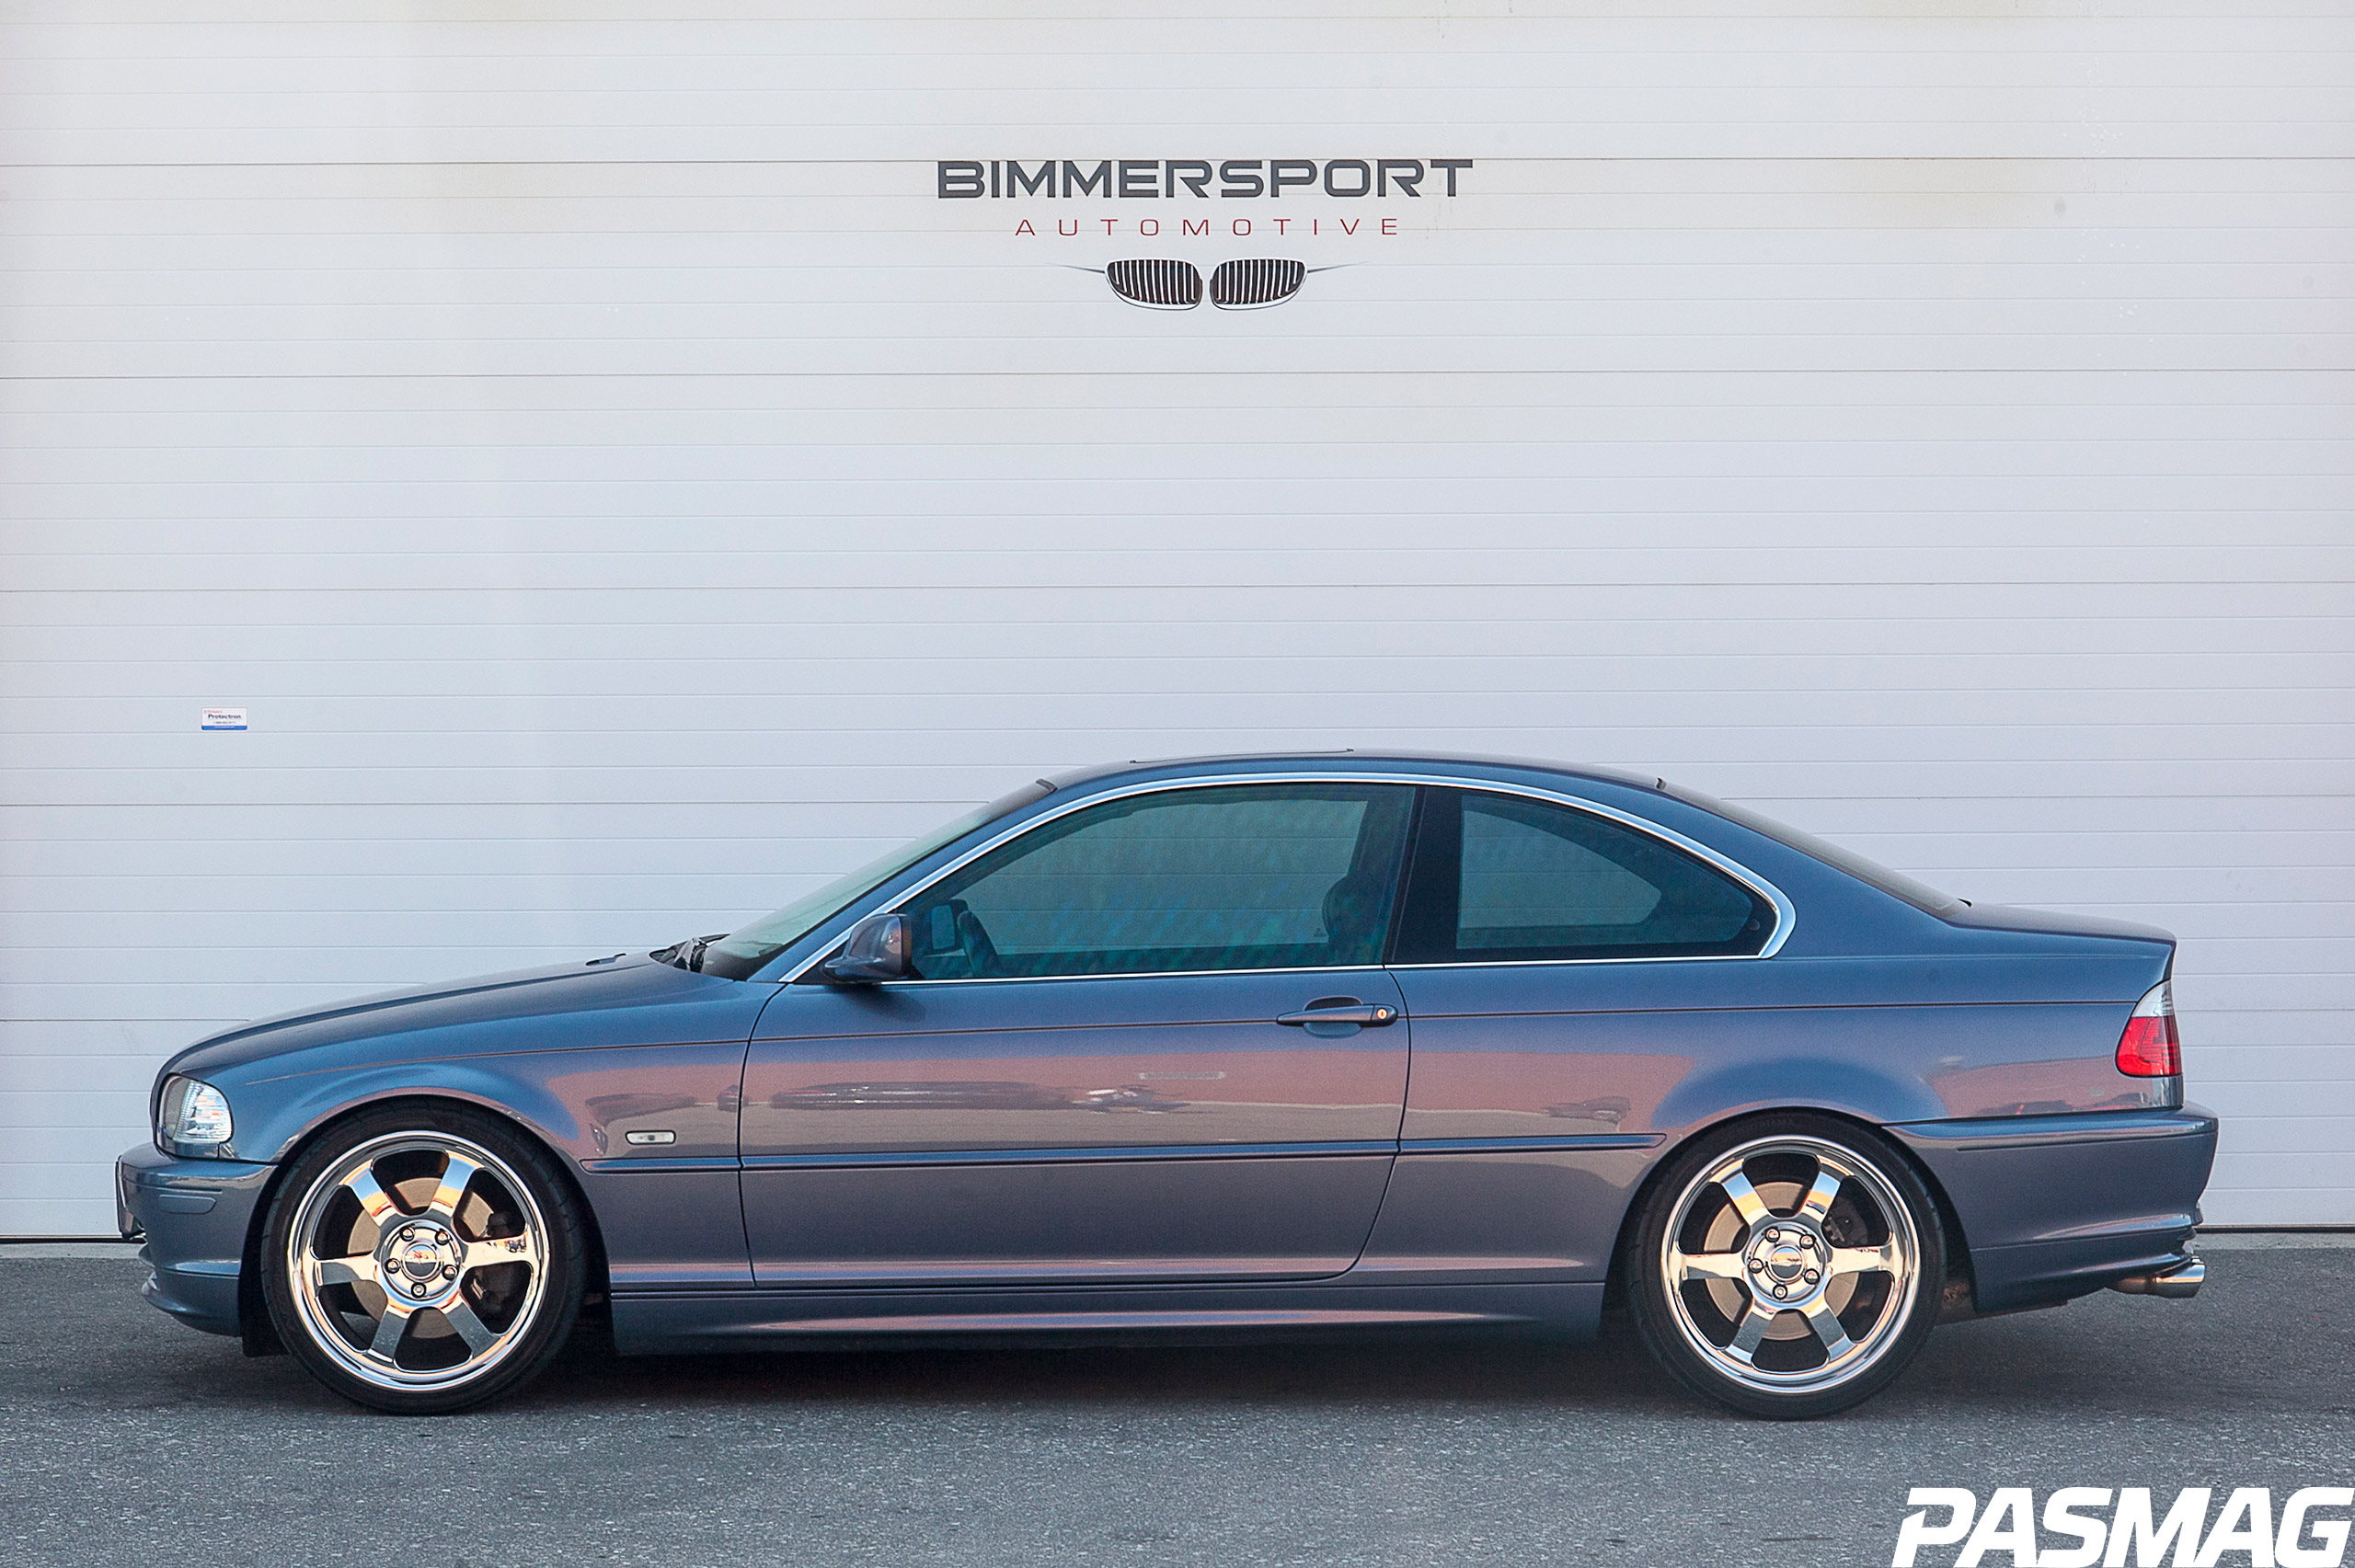 Project BMW 330Ci: HSD Coilovers and Sprint Booster Install - PASMAG